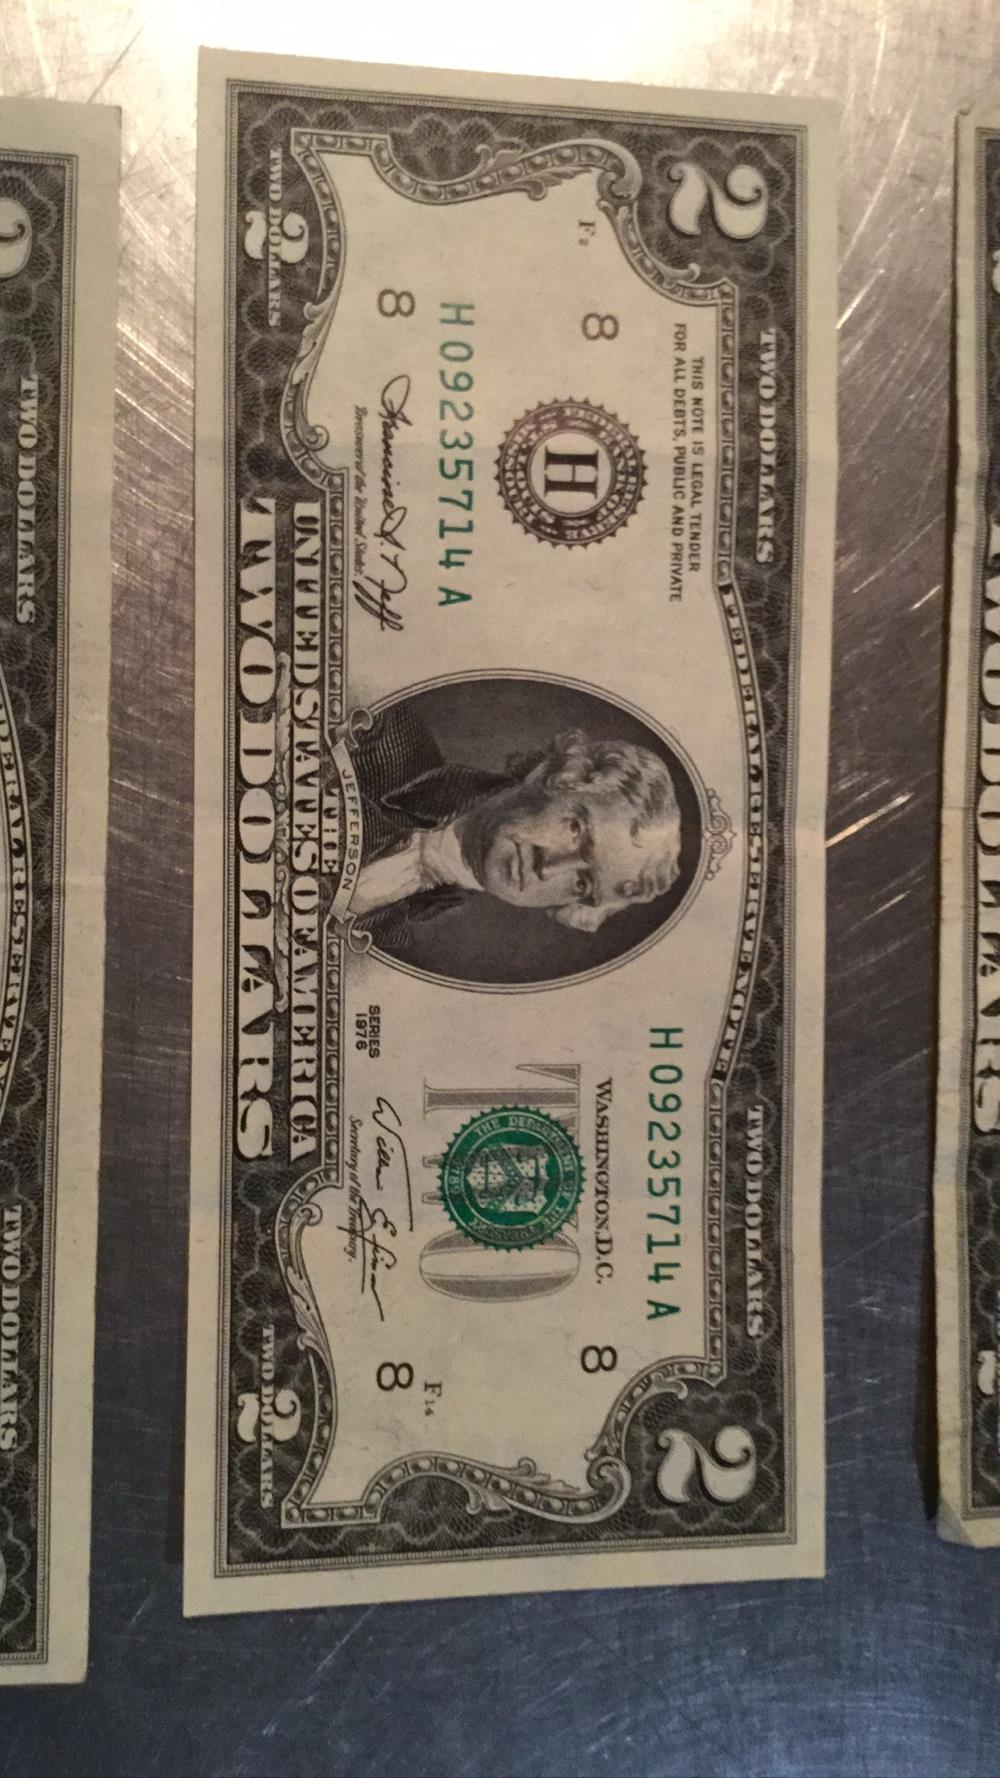 Lot 198: For two dollar bills